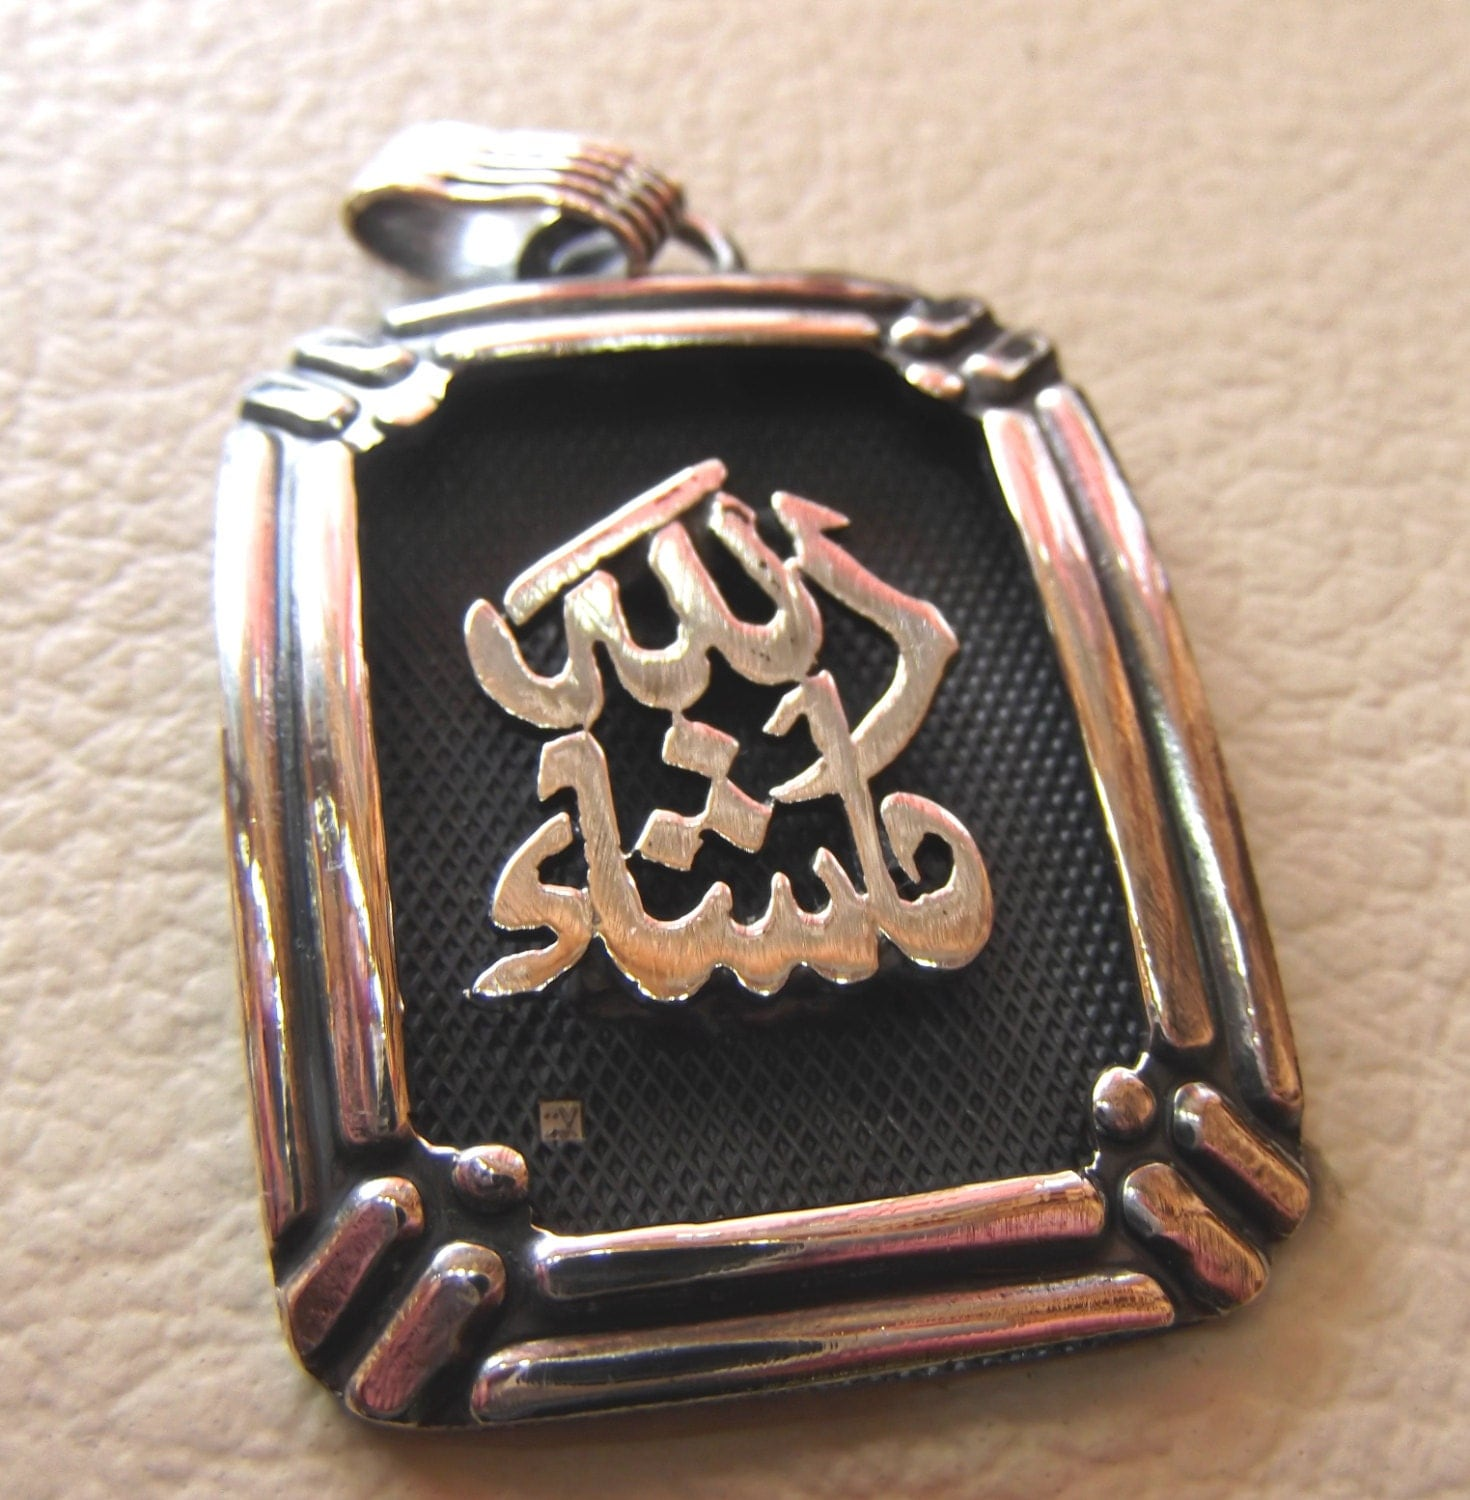 Pendant Sterling Silver 925 Islamic Arabic Writing Calligraphy